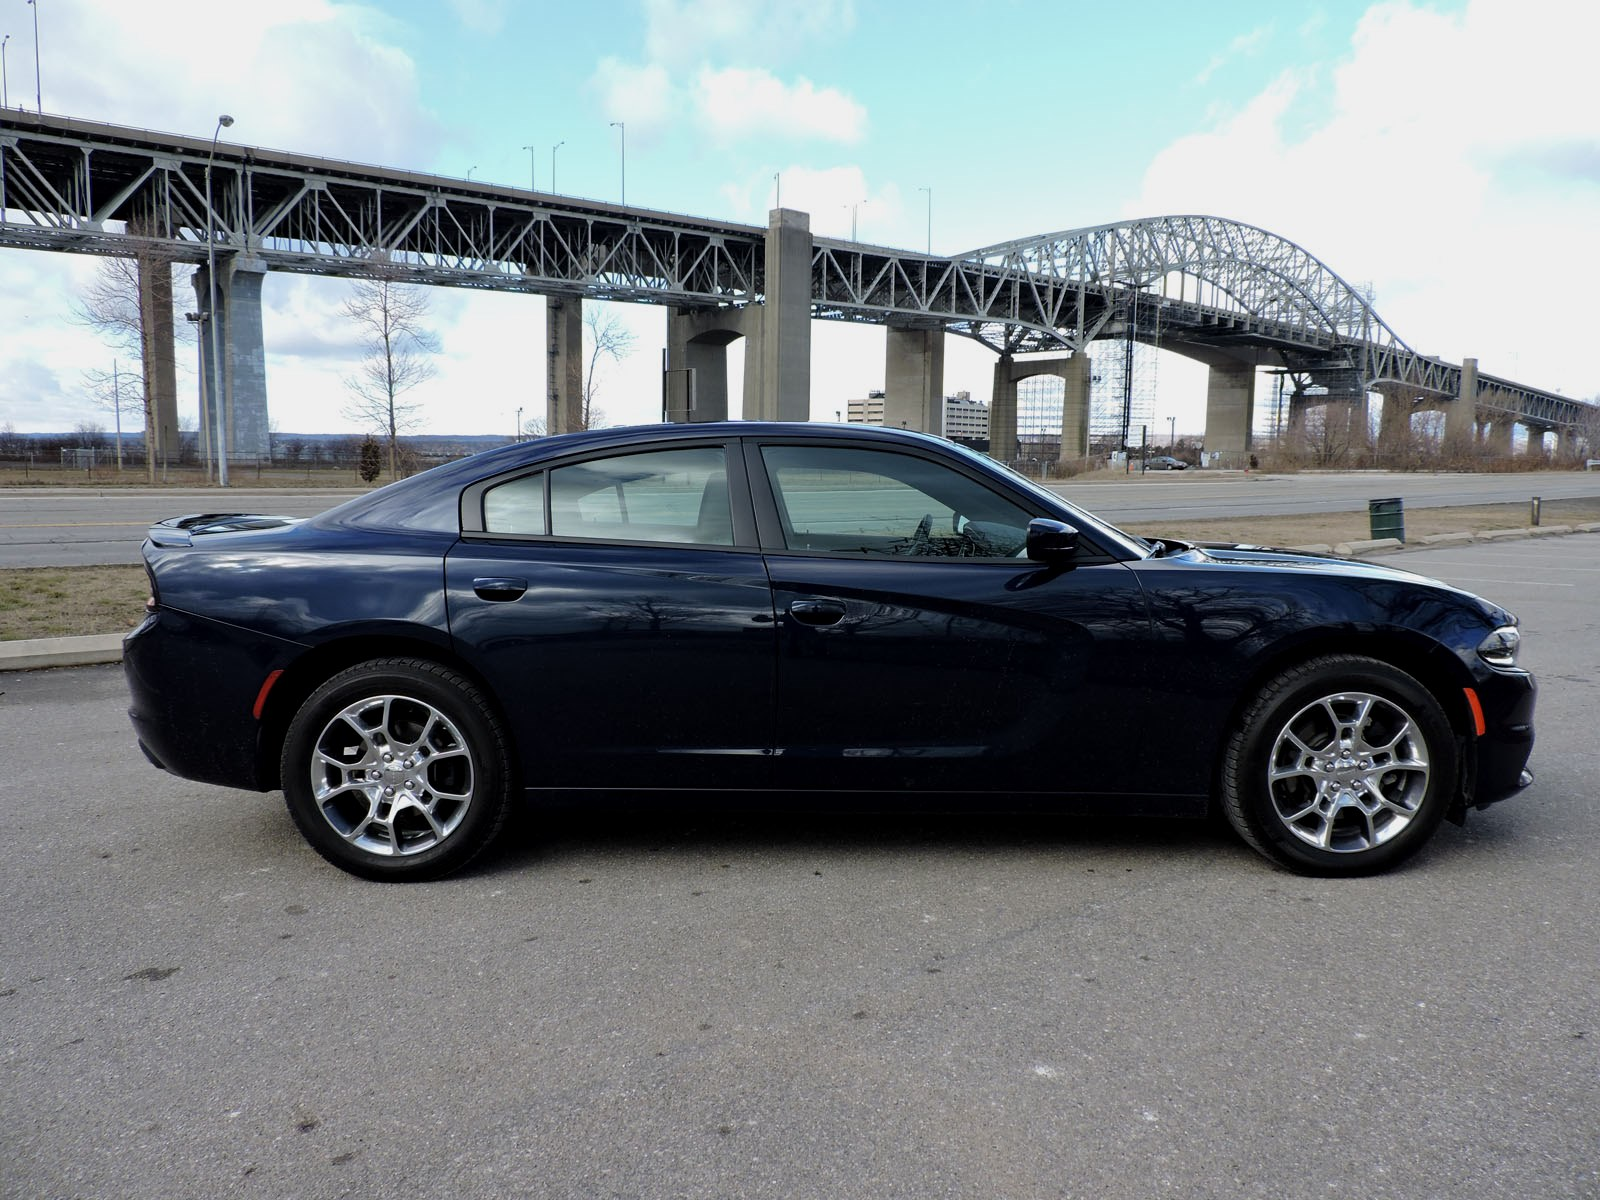 Dodge Charger 2016 >> 2016 Dodge Charger SXT AWD Review - AutoGuide.com